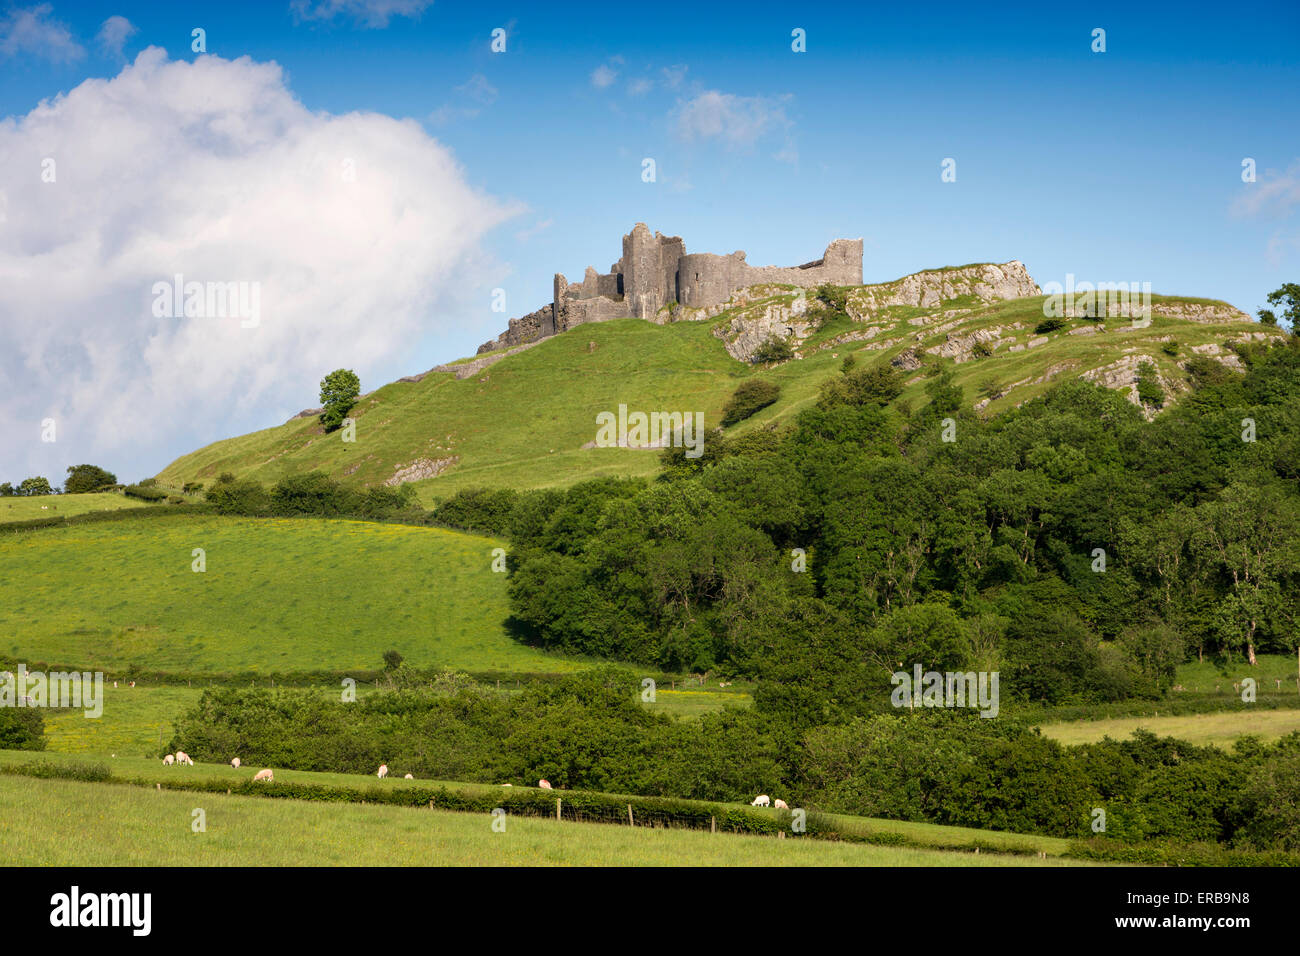 Wales, Carmarthenshire, Carmarthen, Trapp, Carreg Cennen, privately owned Castle - Stock Image